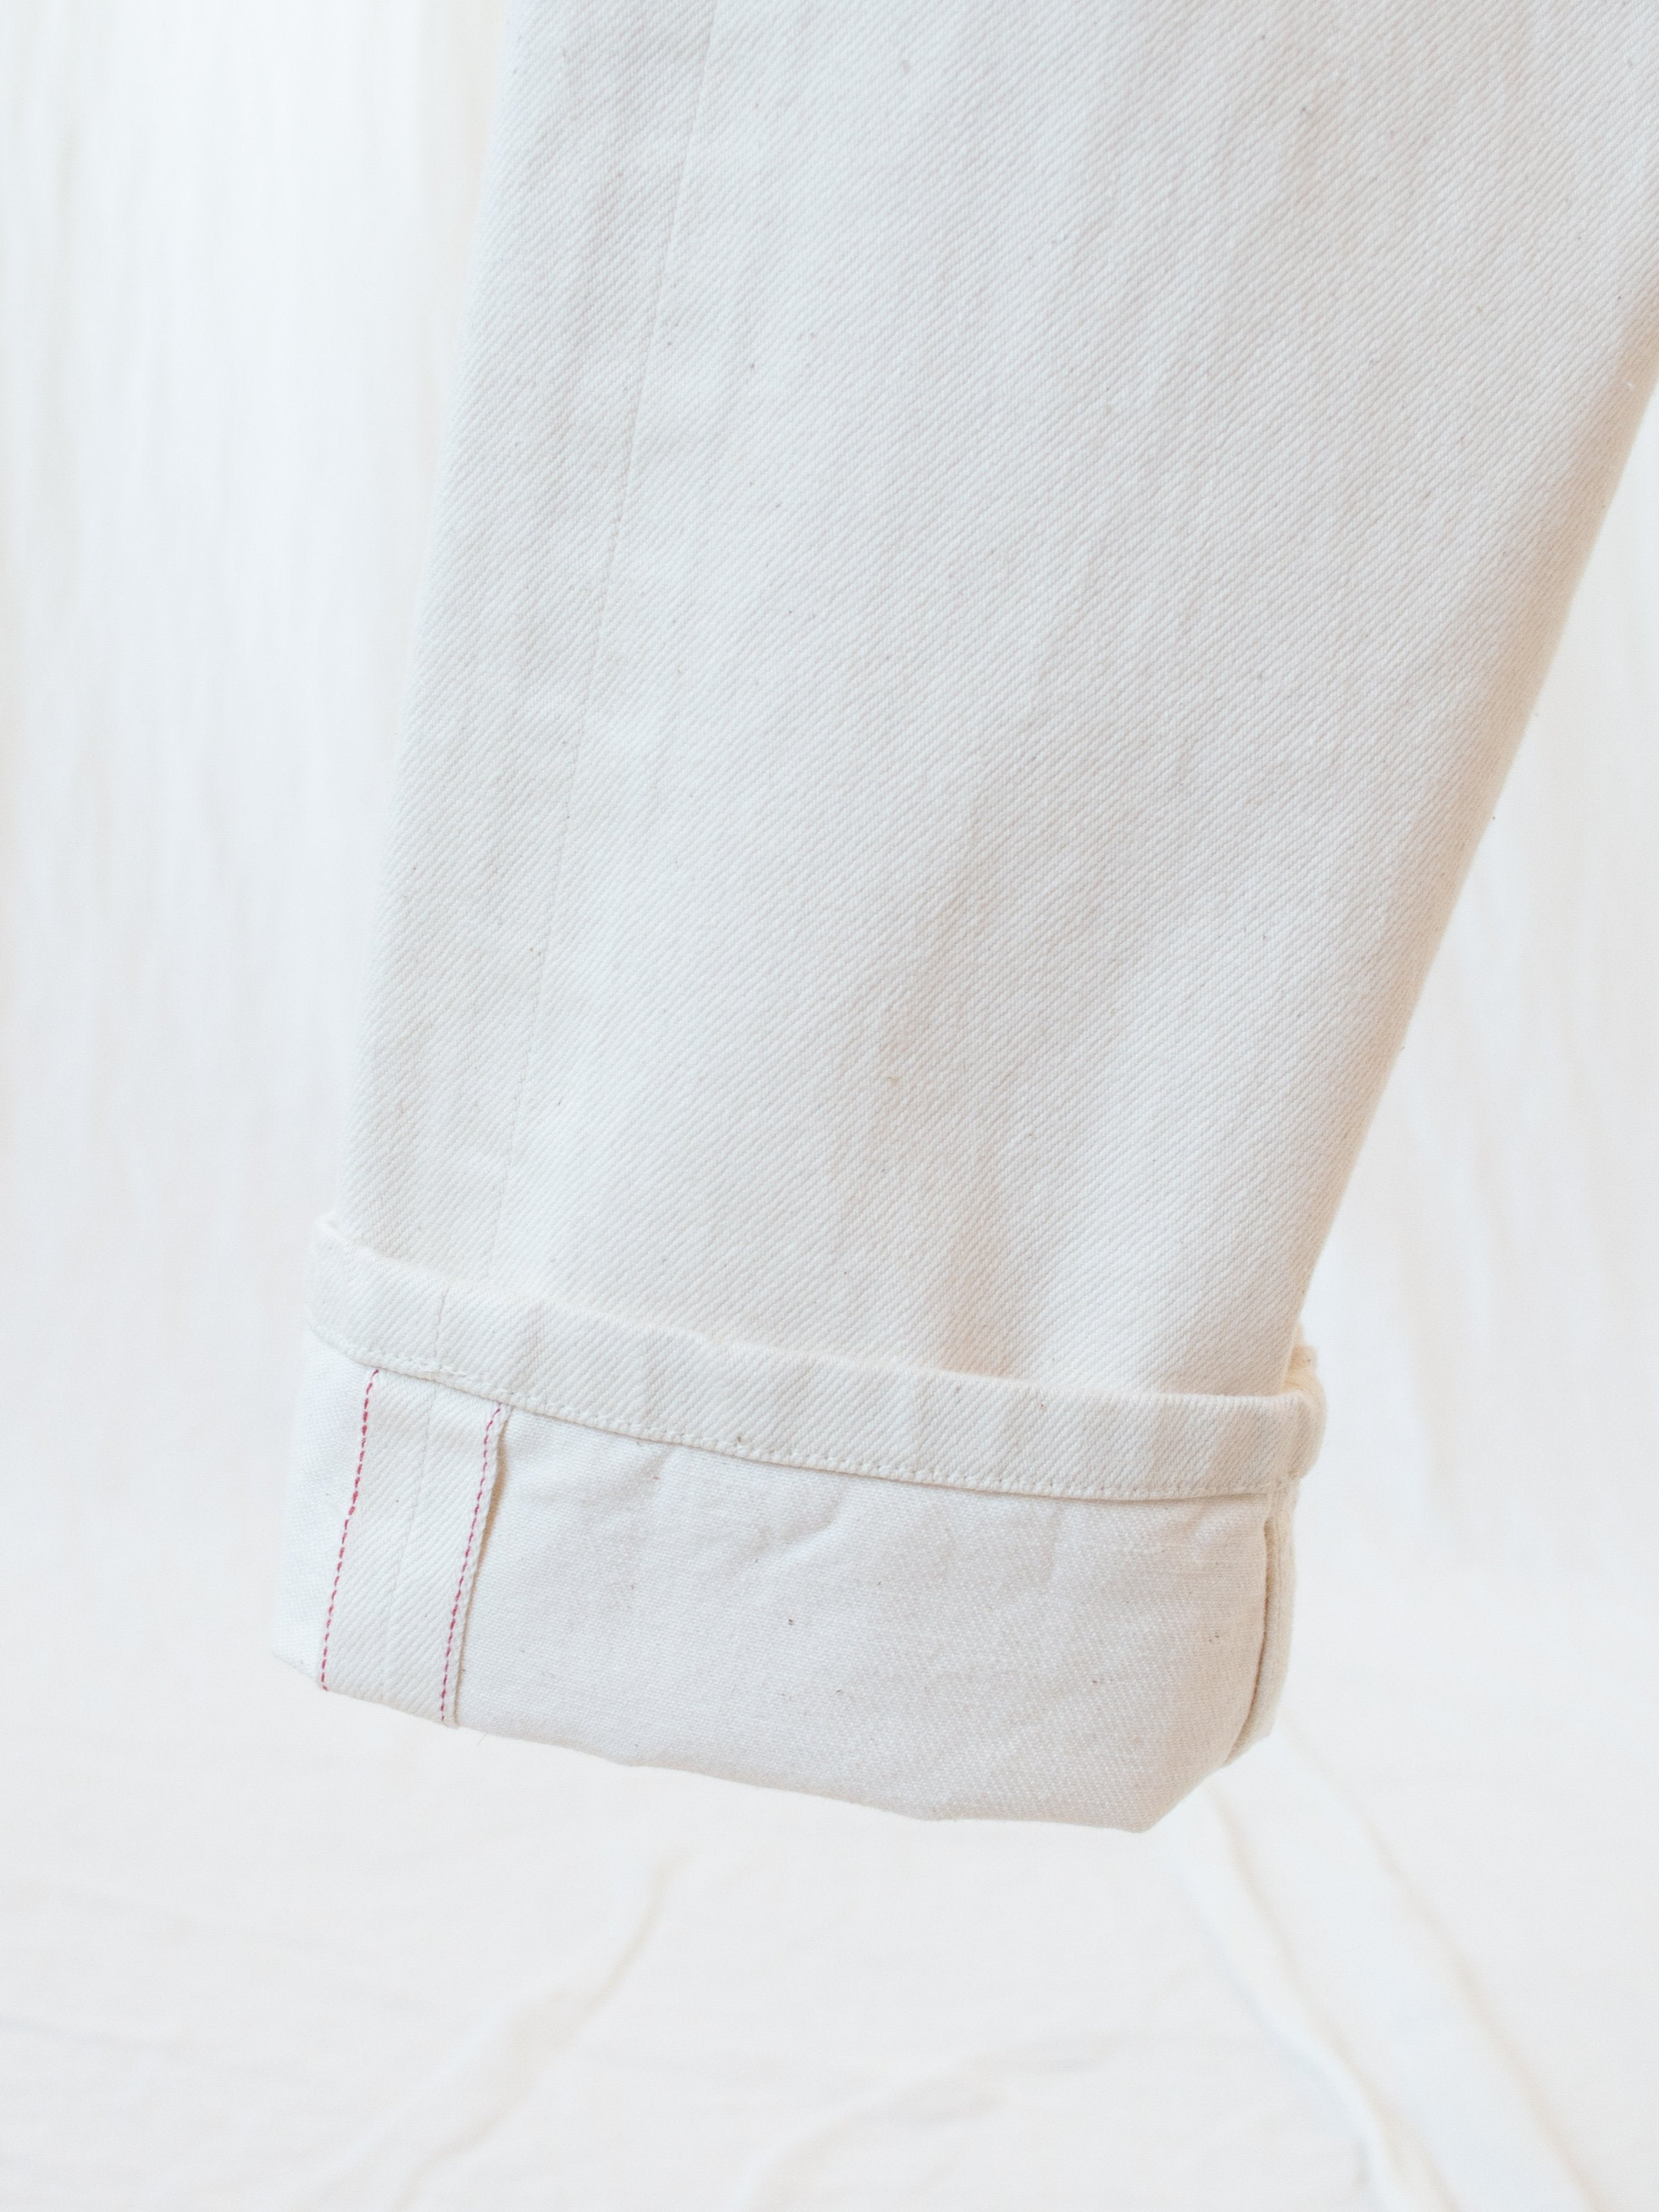 Namu Shop - Document White Cotton Denim